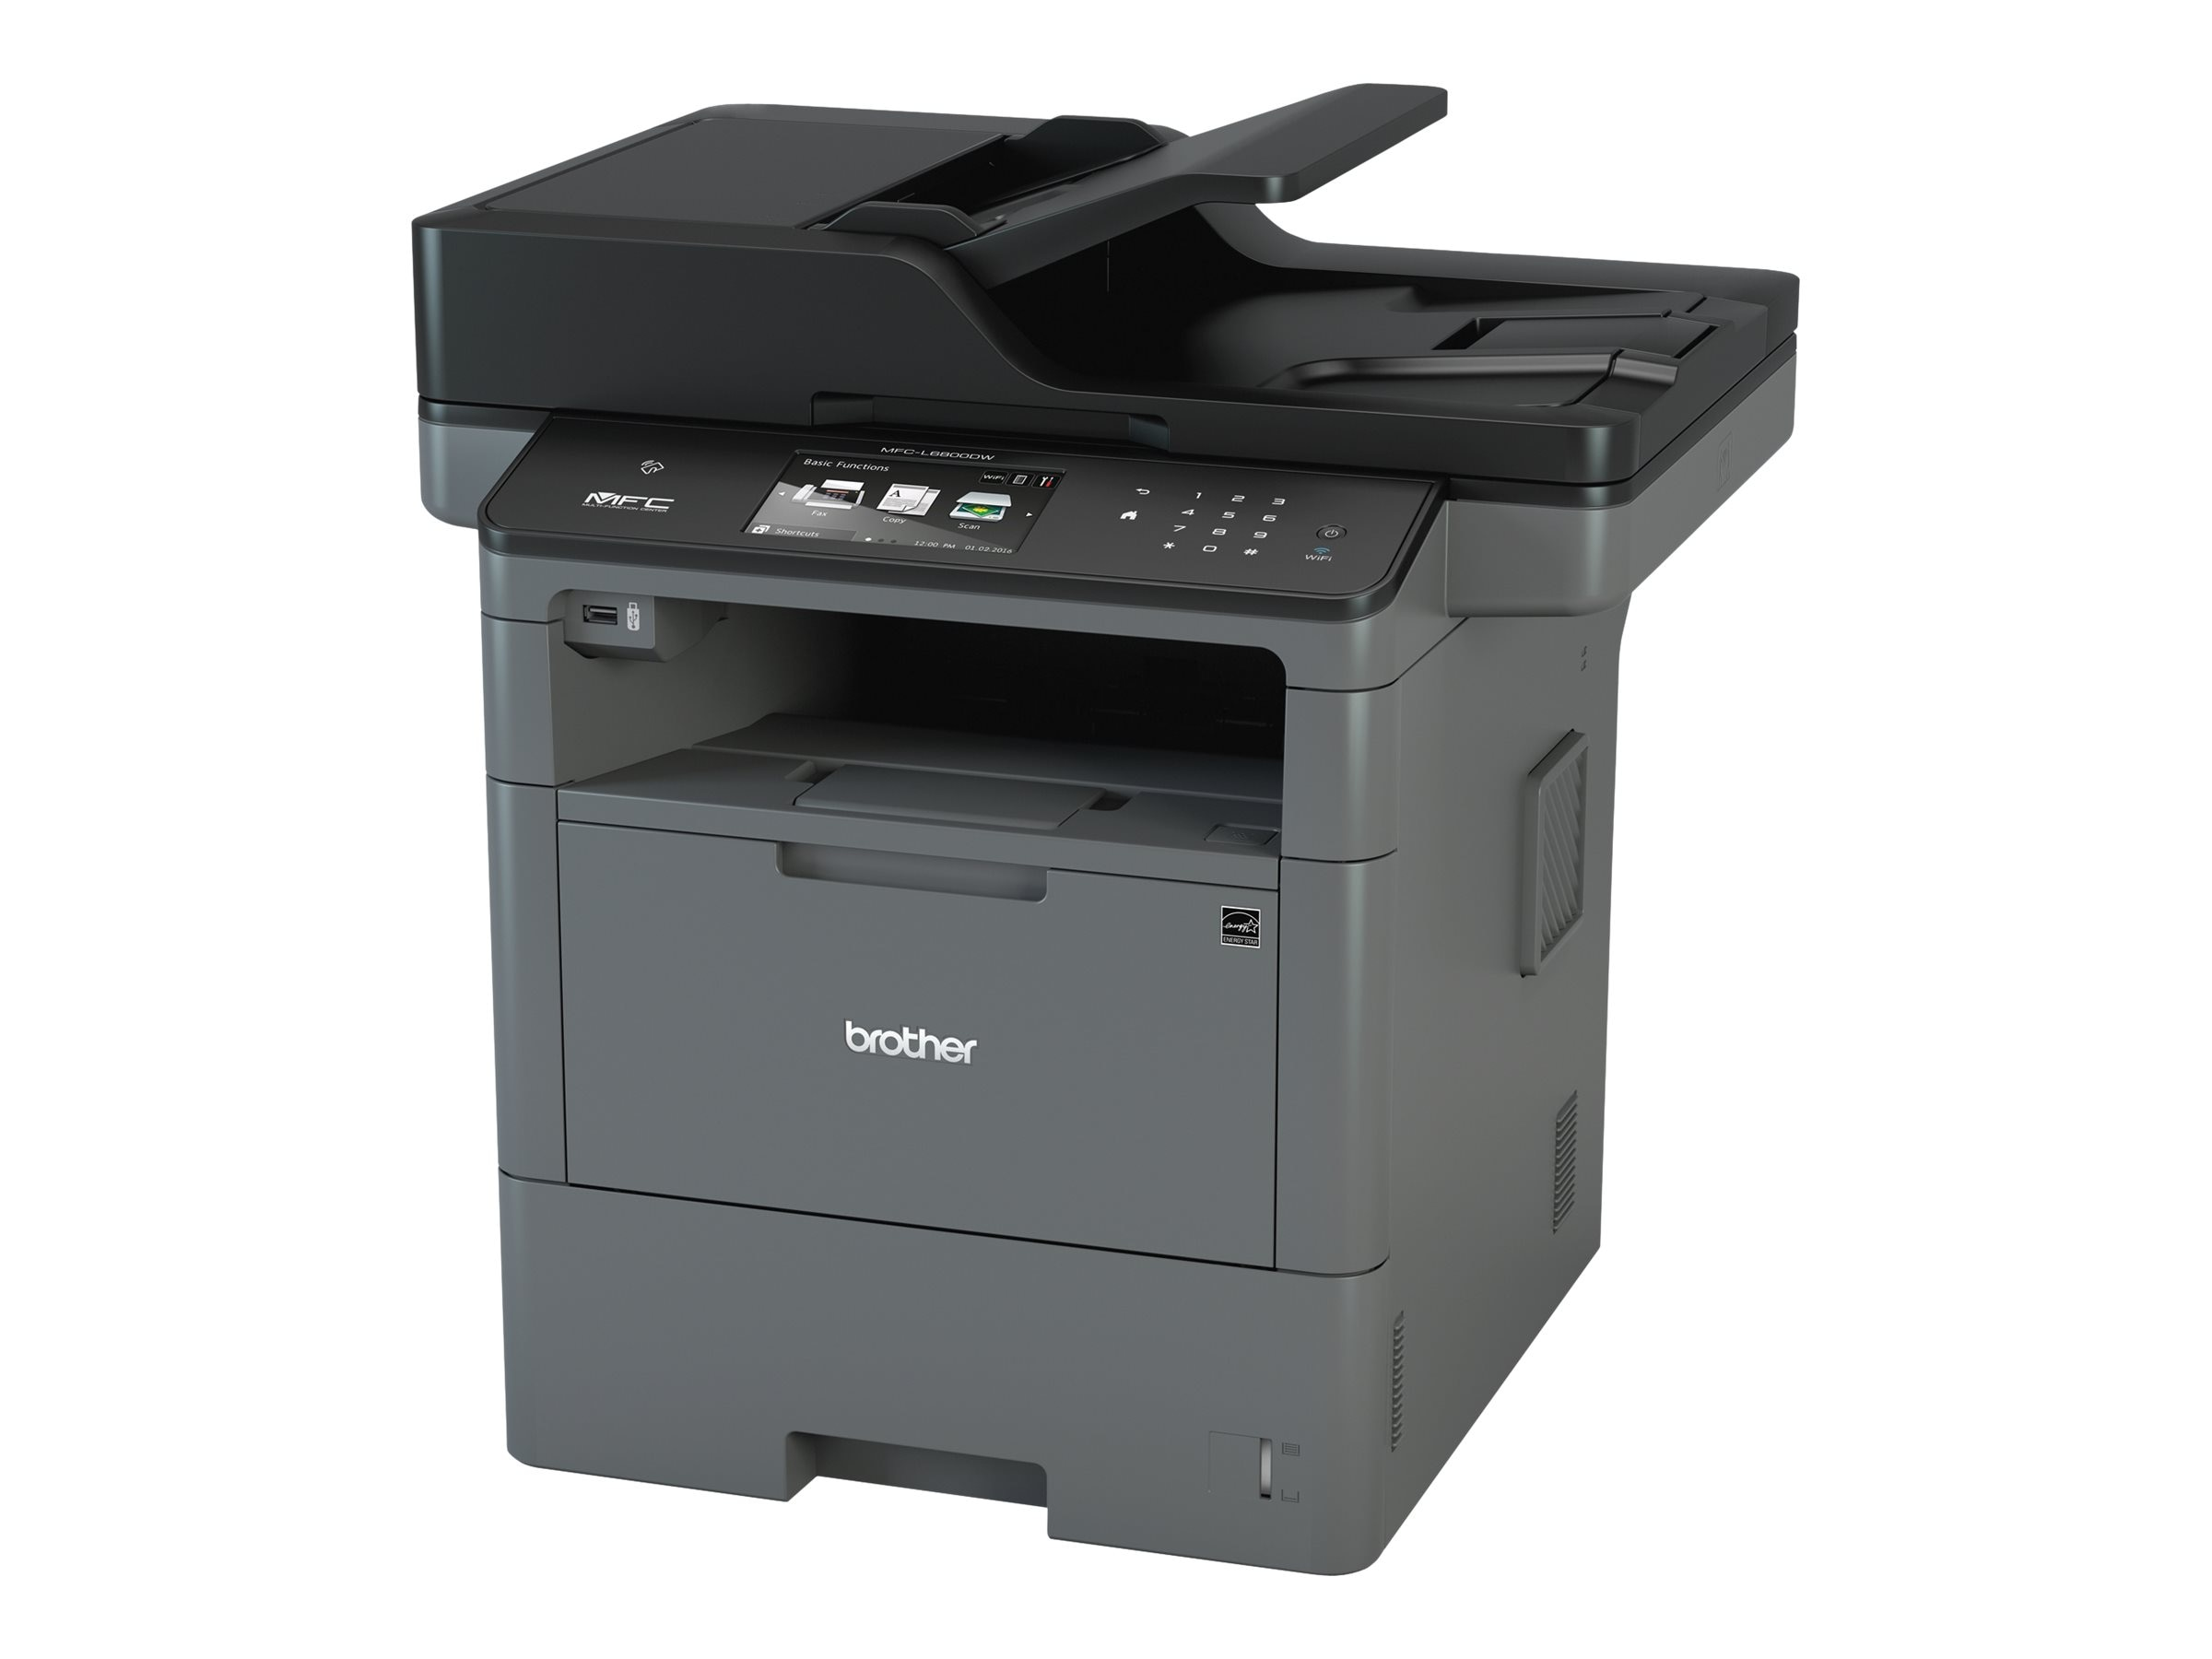 Brother MFC-L6800DW Business Laser All-in-One